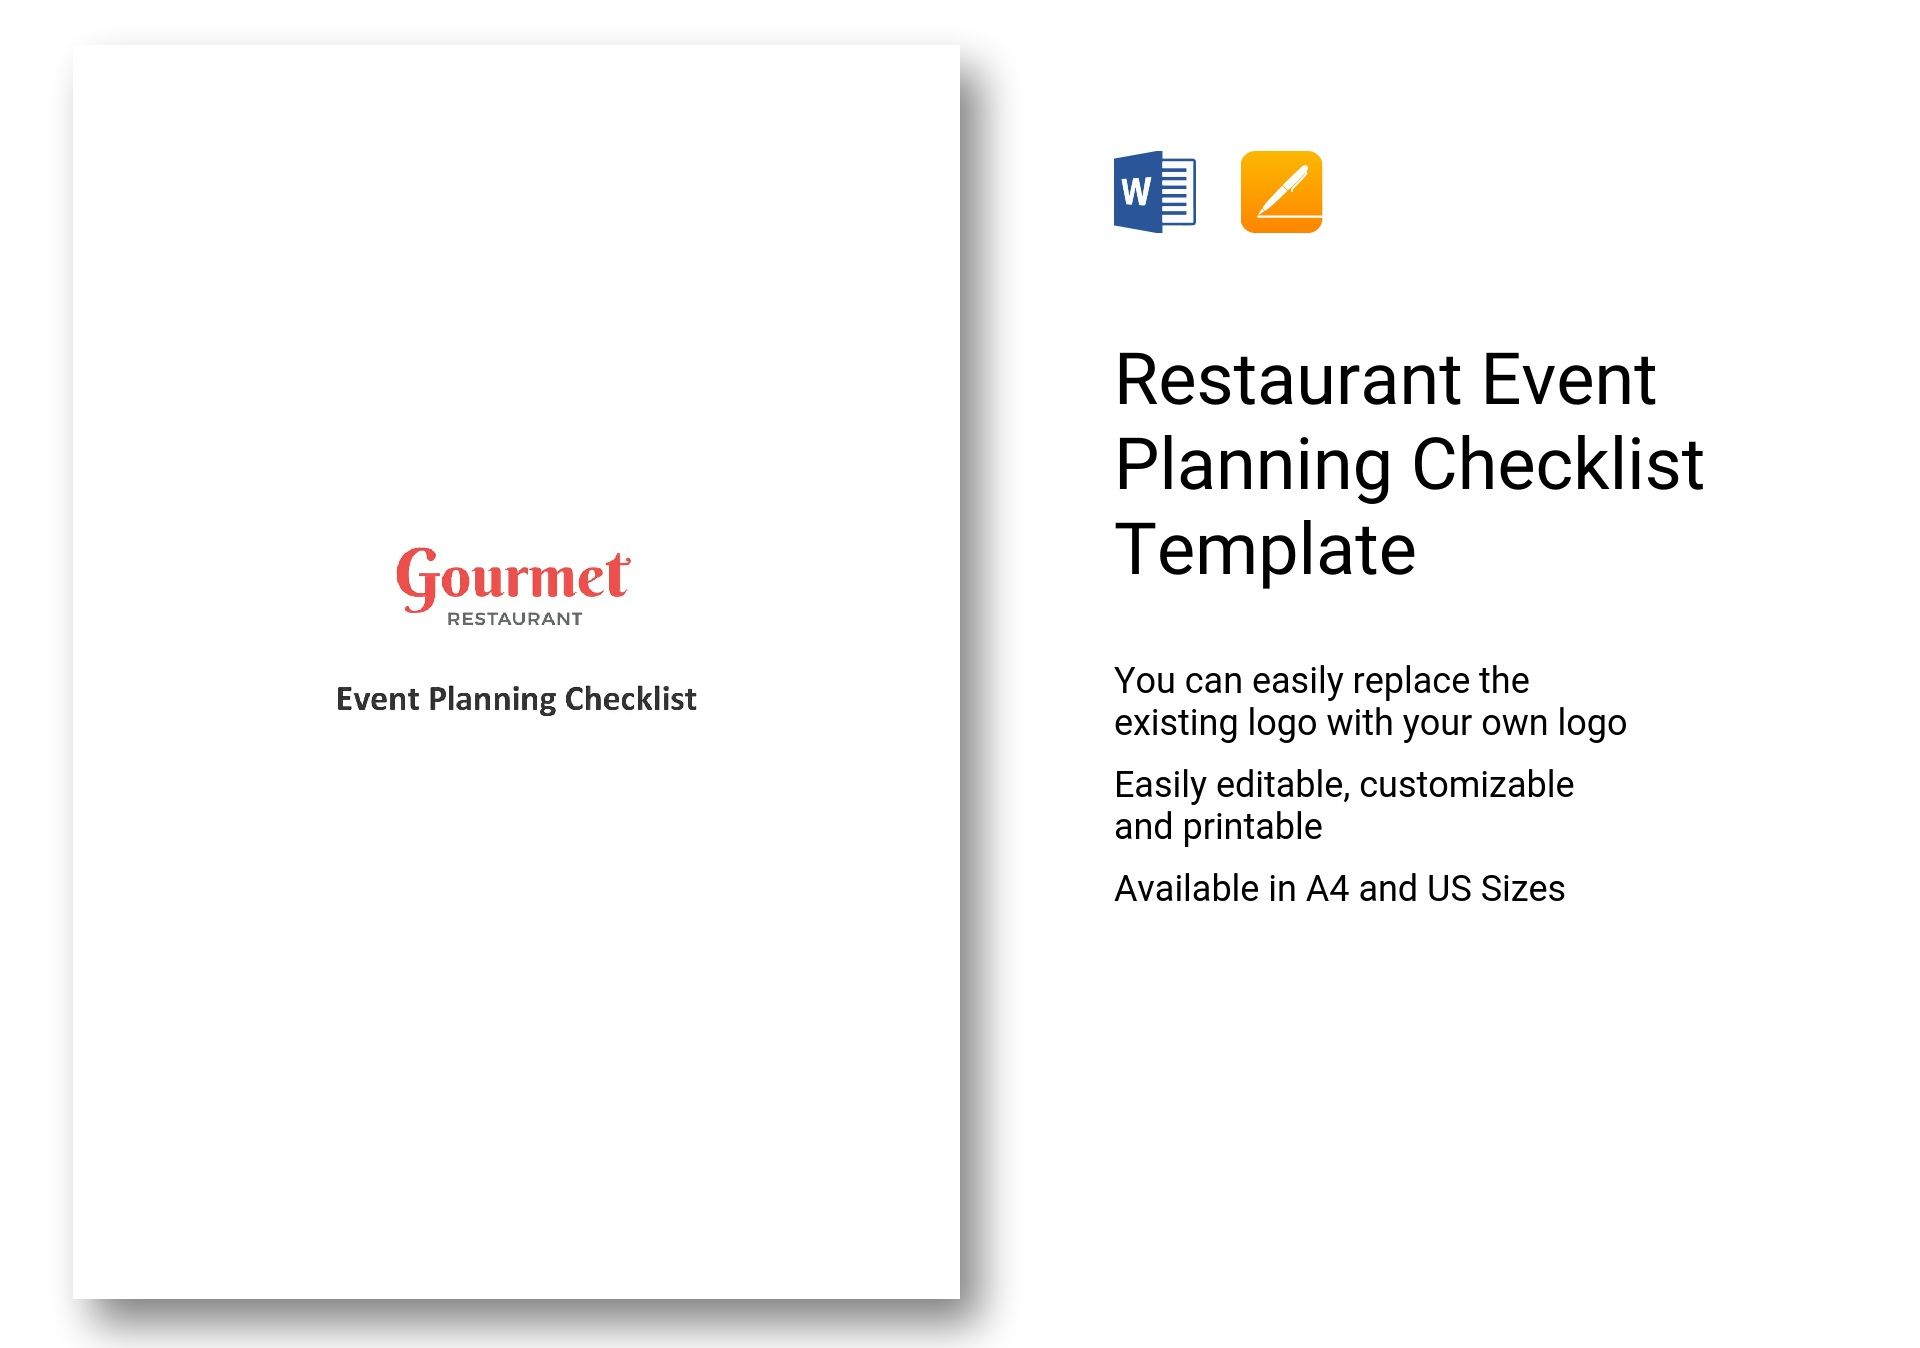 Restaurant Event Planning Checklist